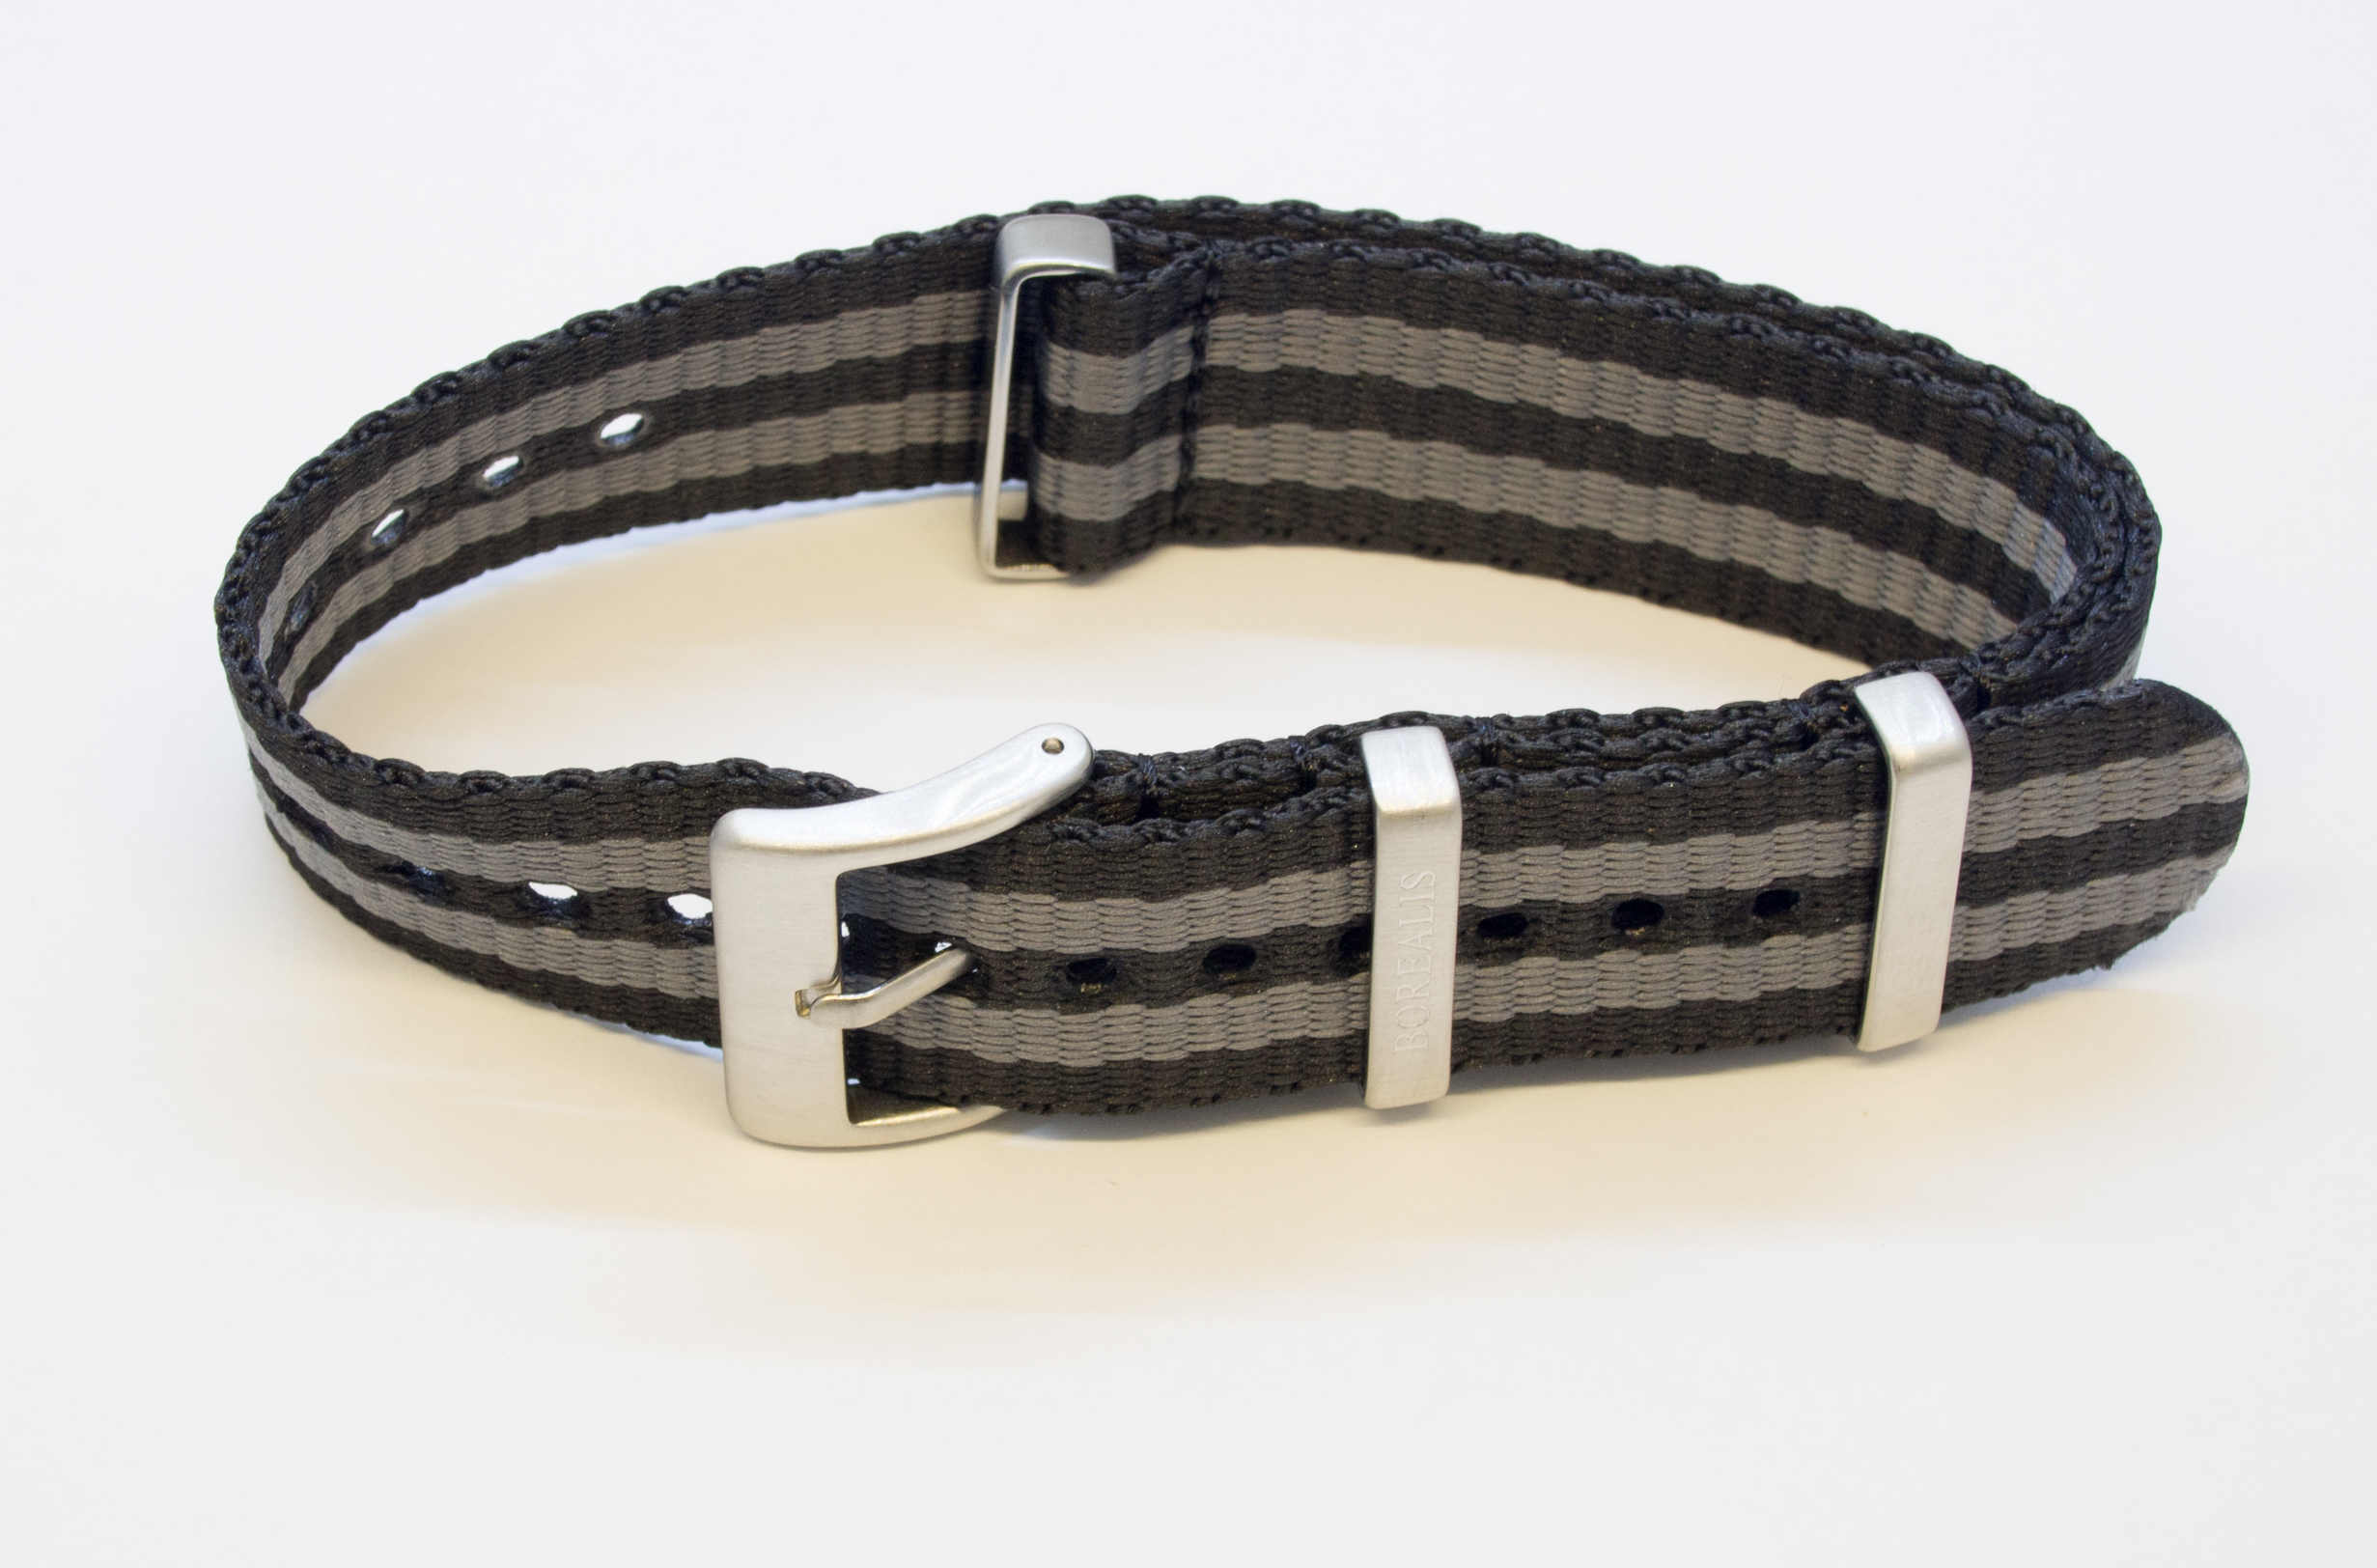 Borealis Nato style nylon strap 20mm size two tone black grey BNS2TBLACKGREY20MM